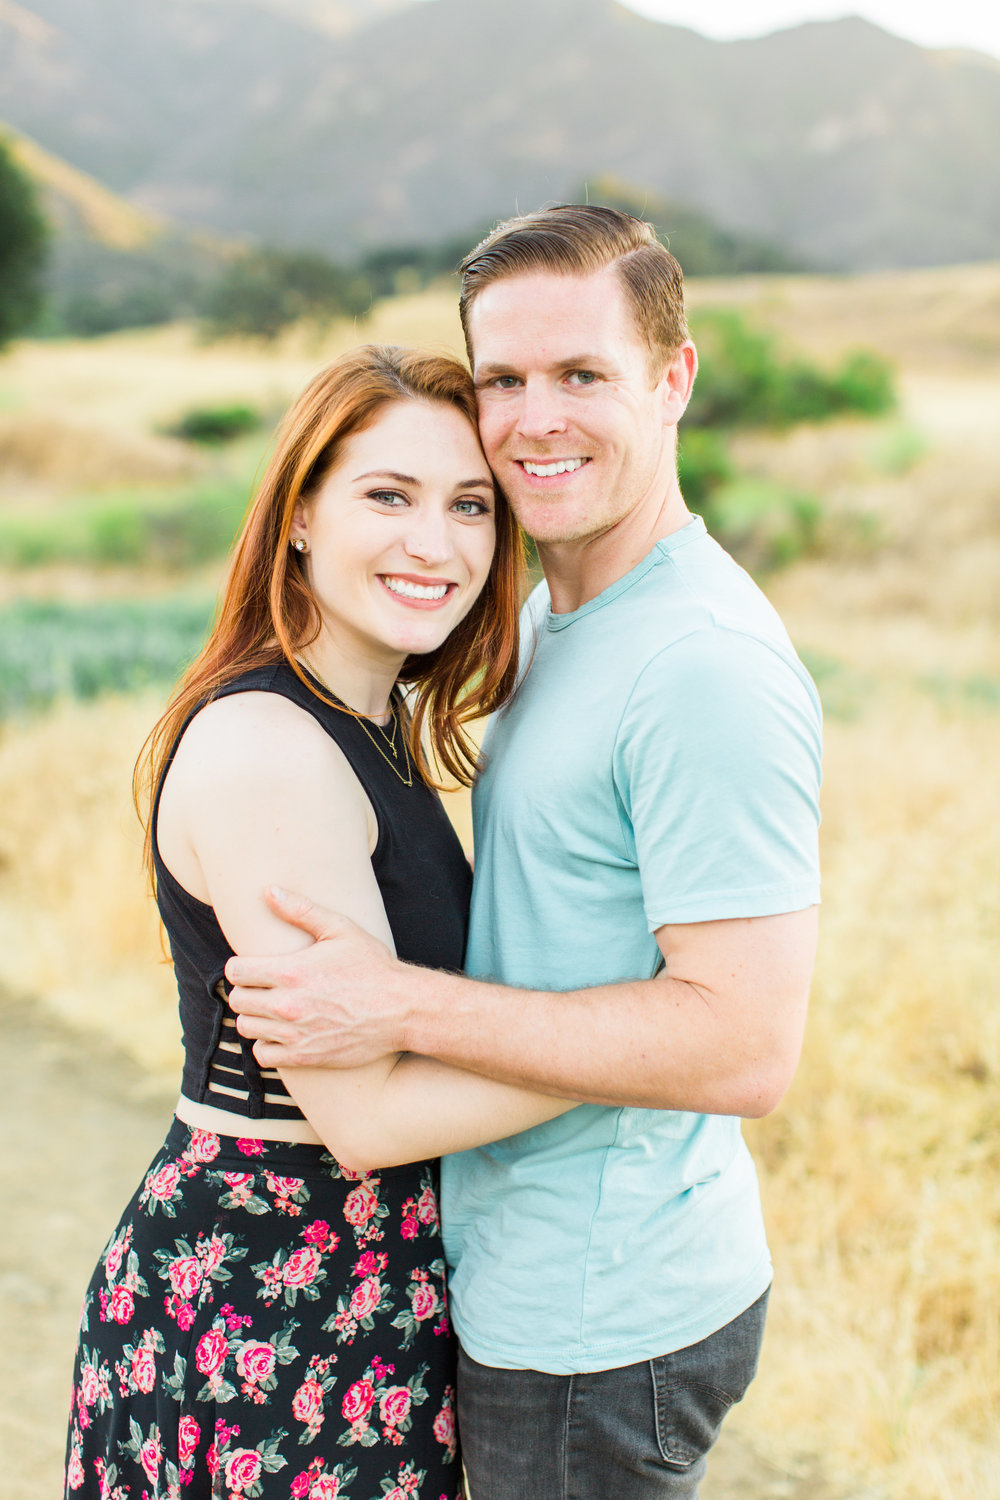 Malibu Engagement Session - Briana + Alex - Sarah Ellefson Photography